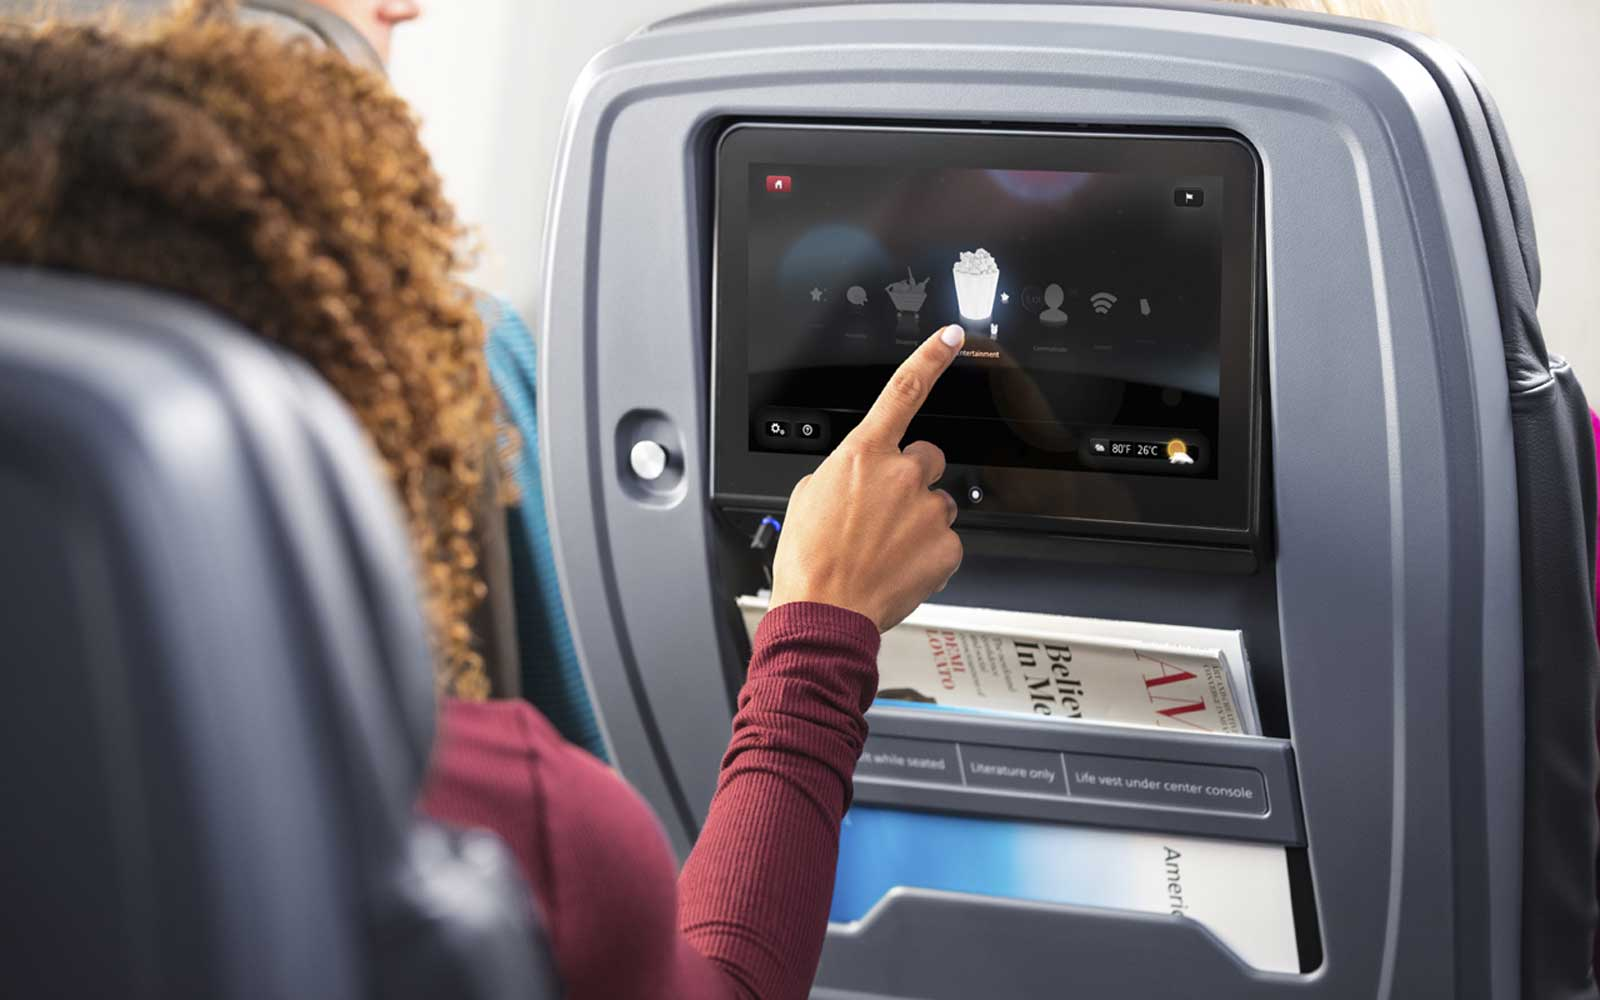 A Guide to Using Inflight Entertainment on American Airlines